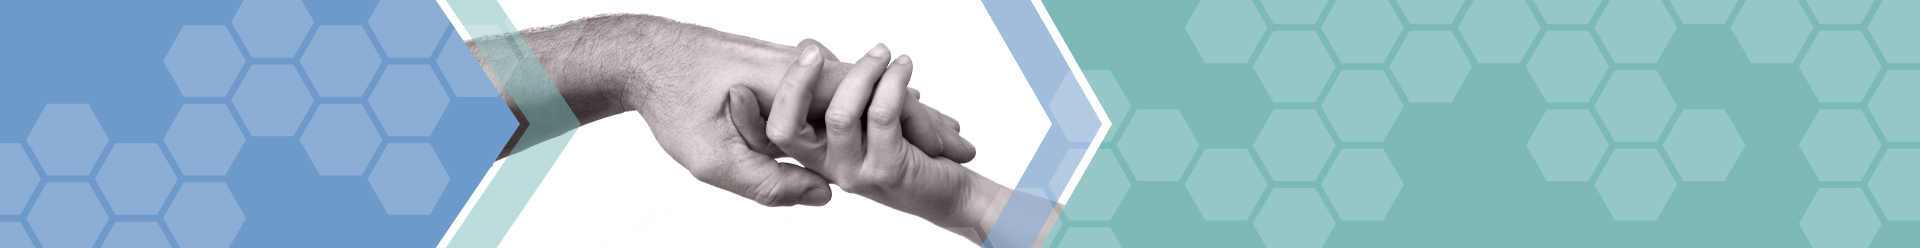 Banner image of two people holding hands